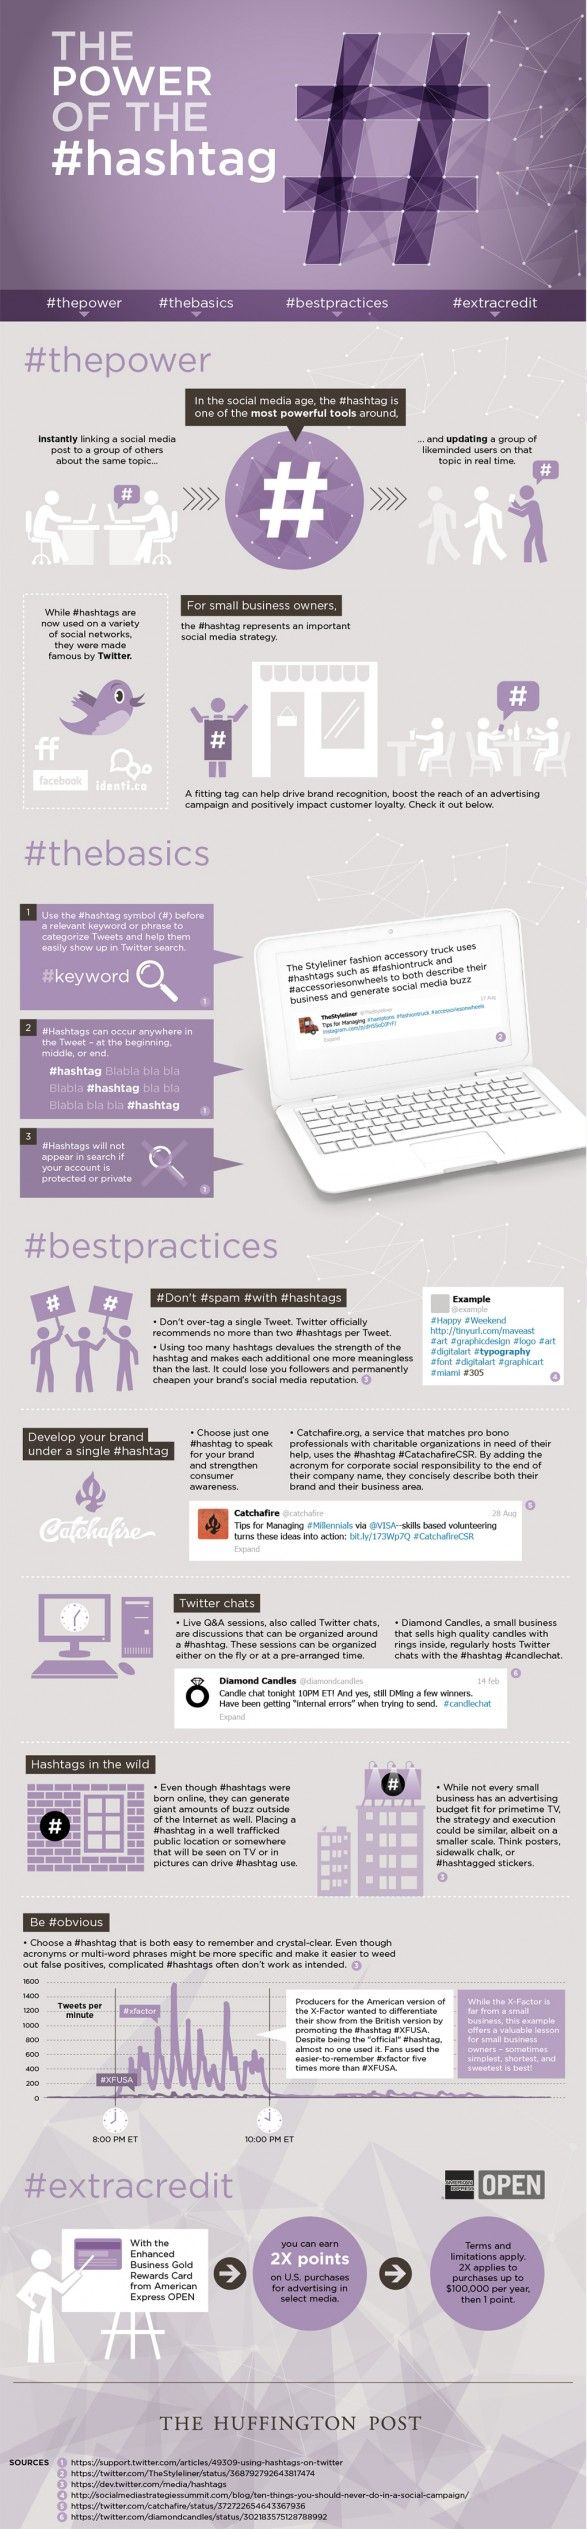 How To Harness The Hashtag [Infographic]